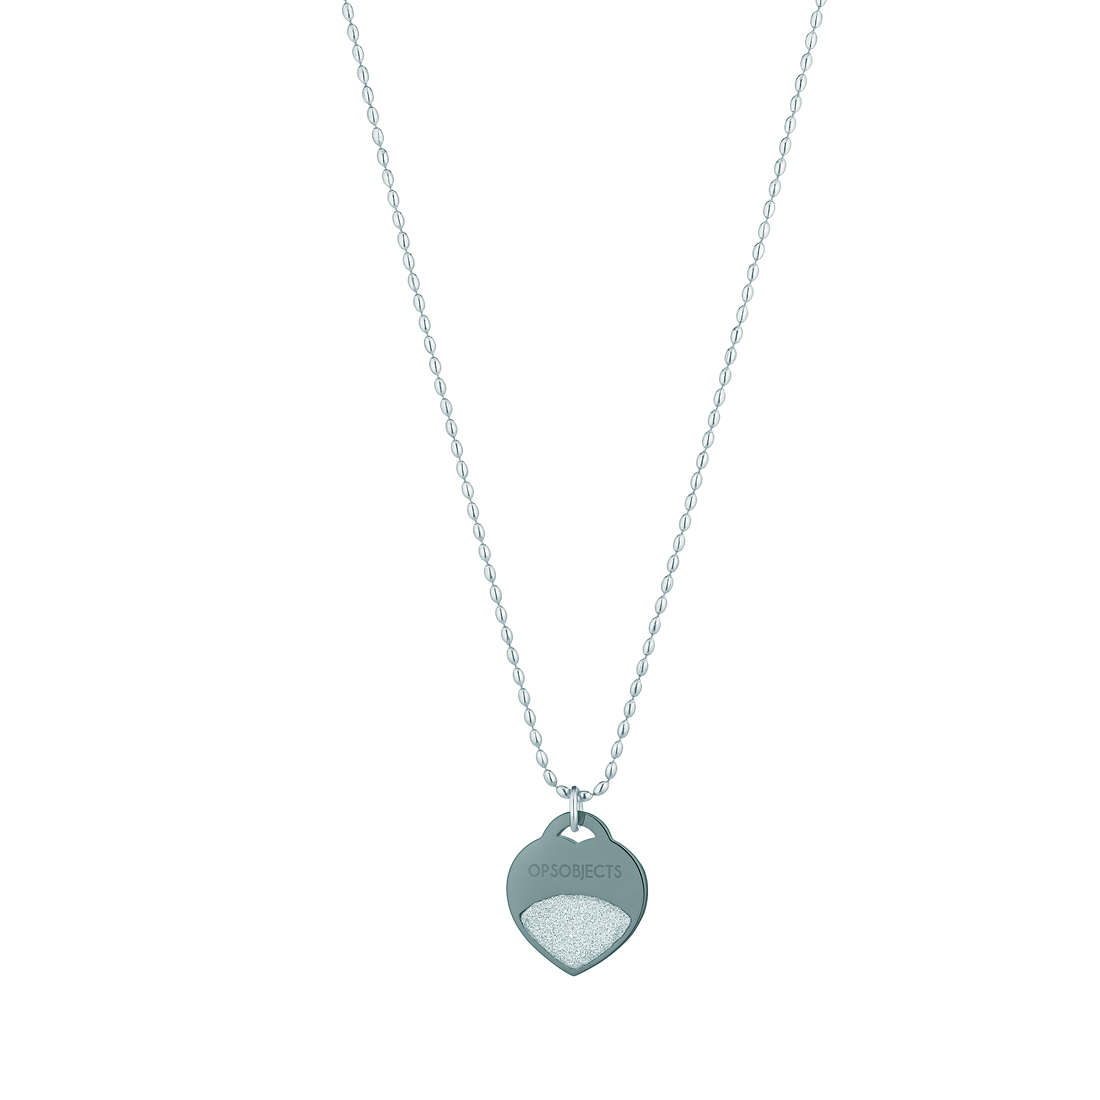 necklace woman jewellery Ops Objects Glitter OPSCL-353